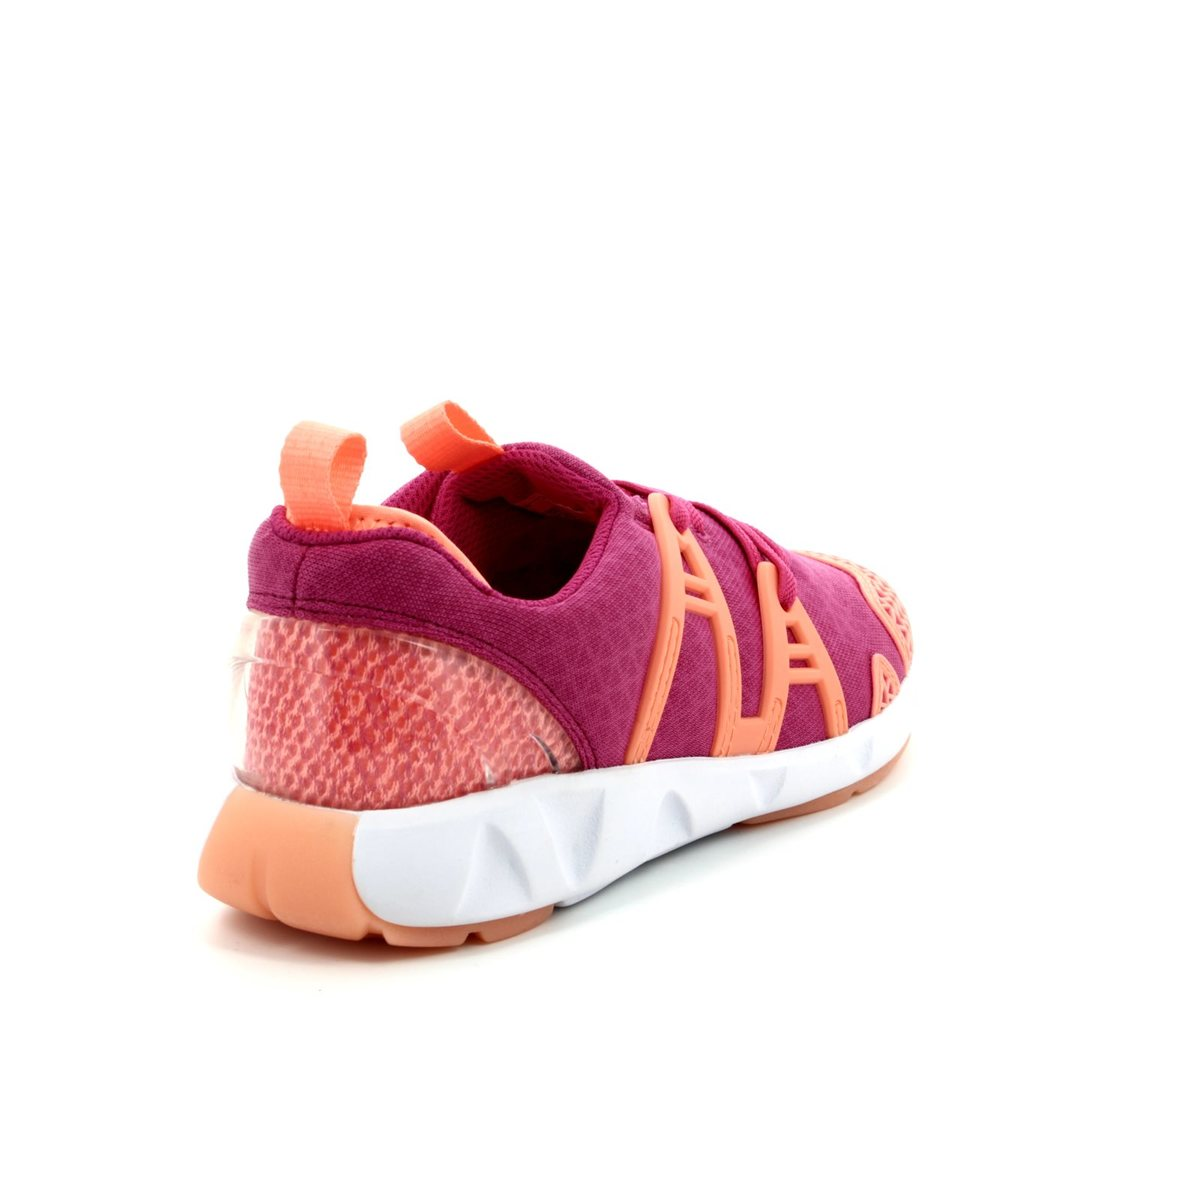 522ec8317dd395 Clarks Trainers - Pink multi - 3005 36F LUMINOUS GLO